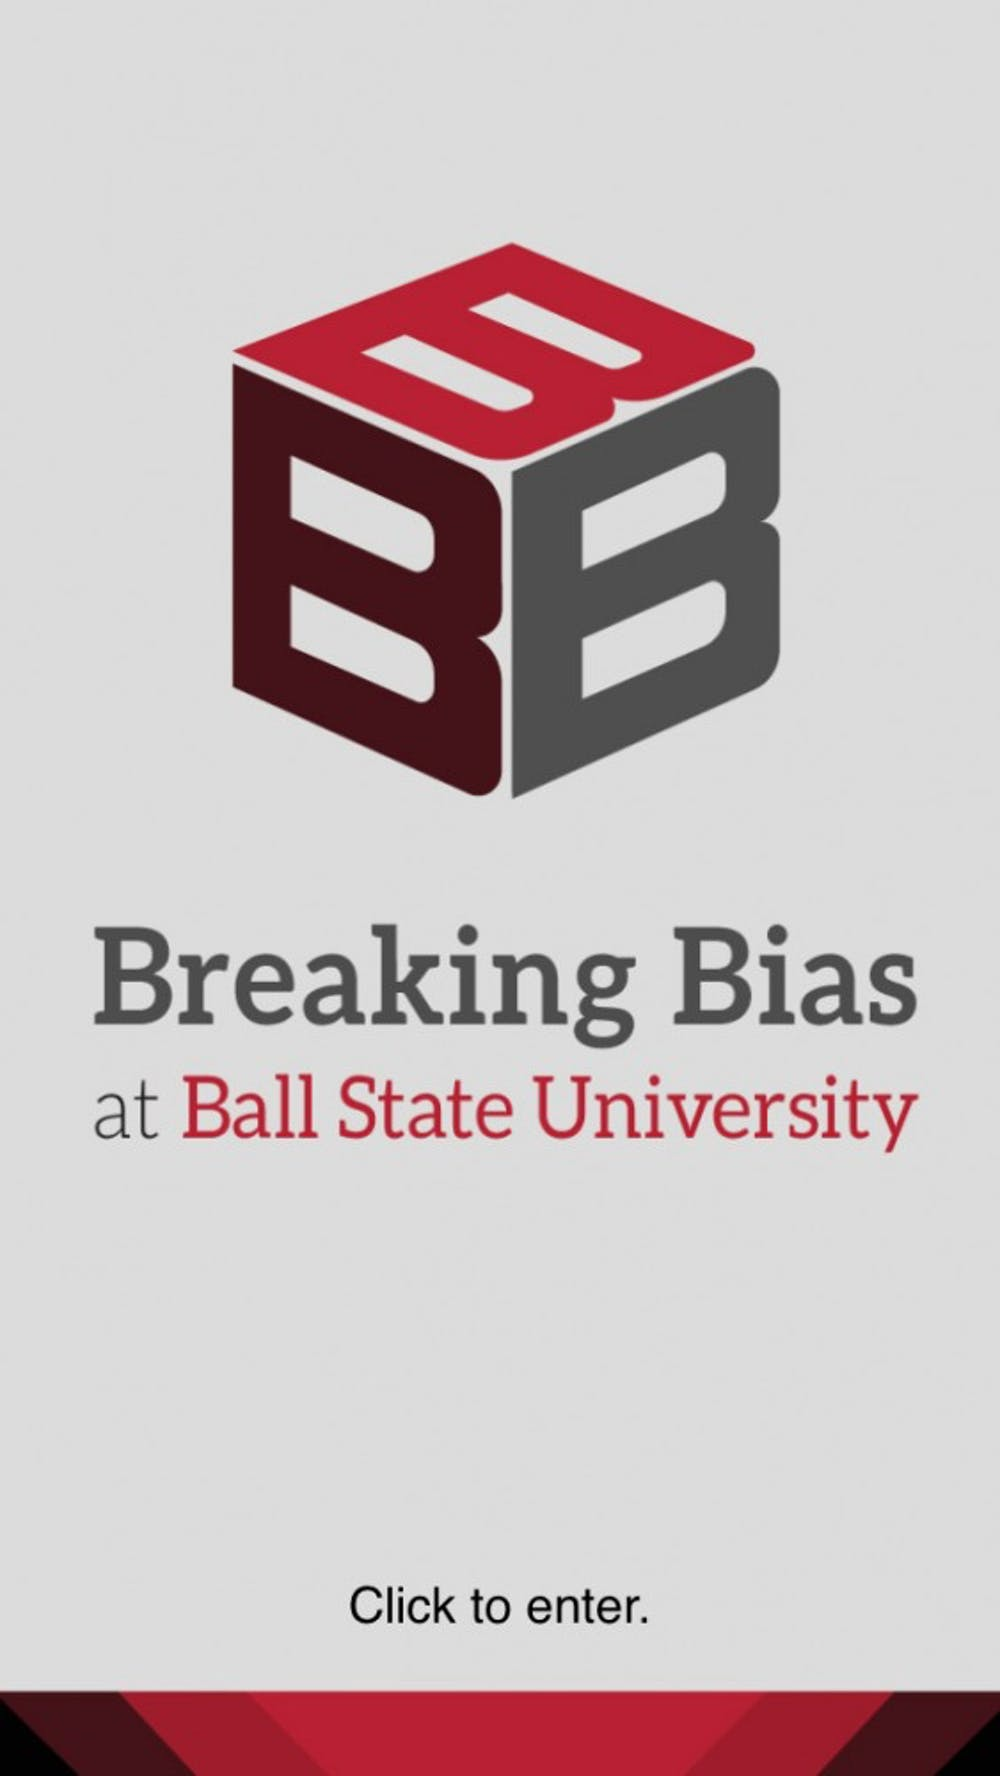 B3-Ball State app lets students report bias incidents on campus, promotes inclusion